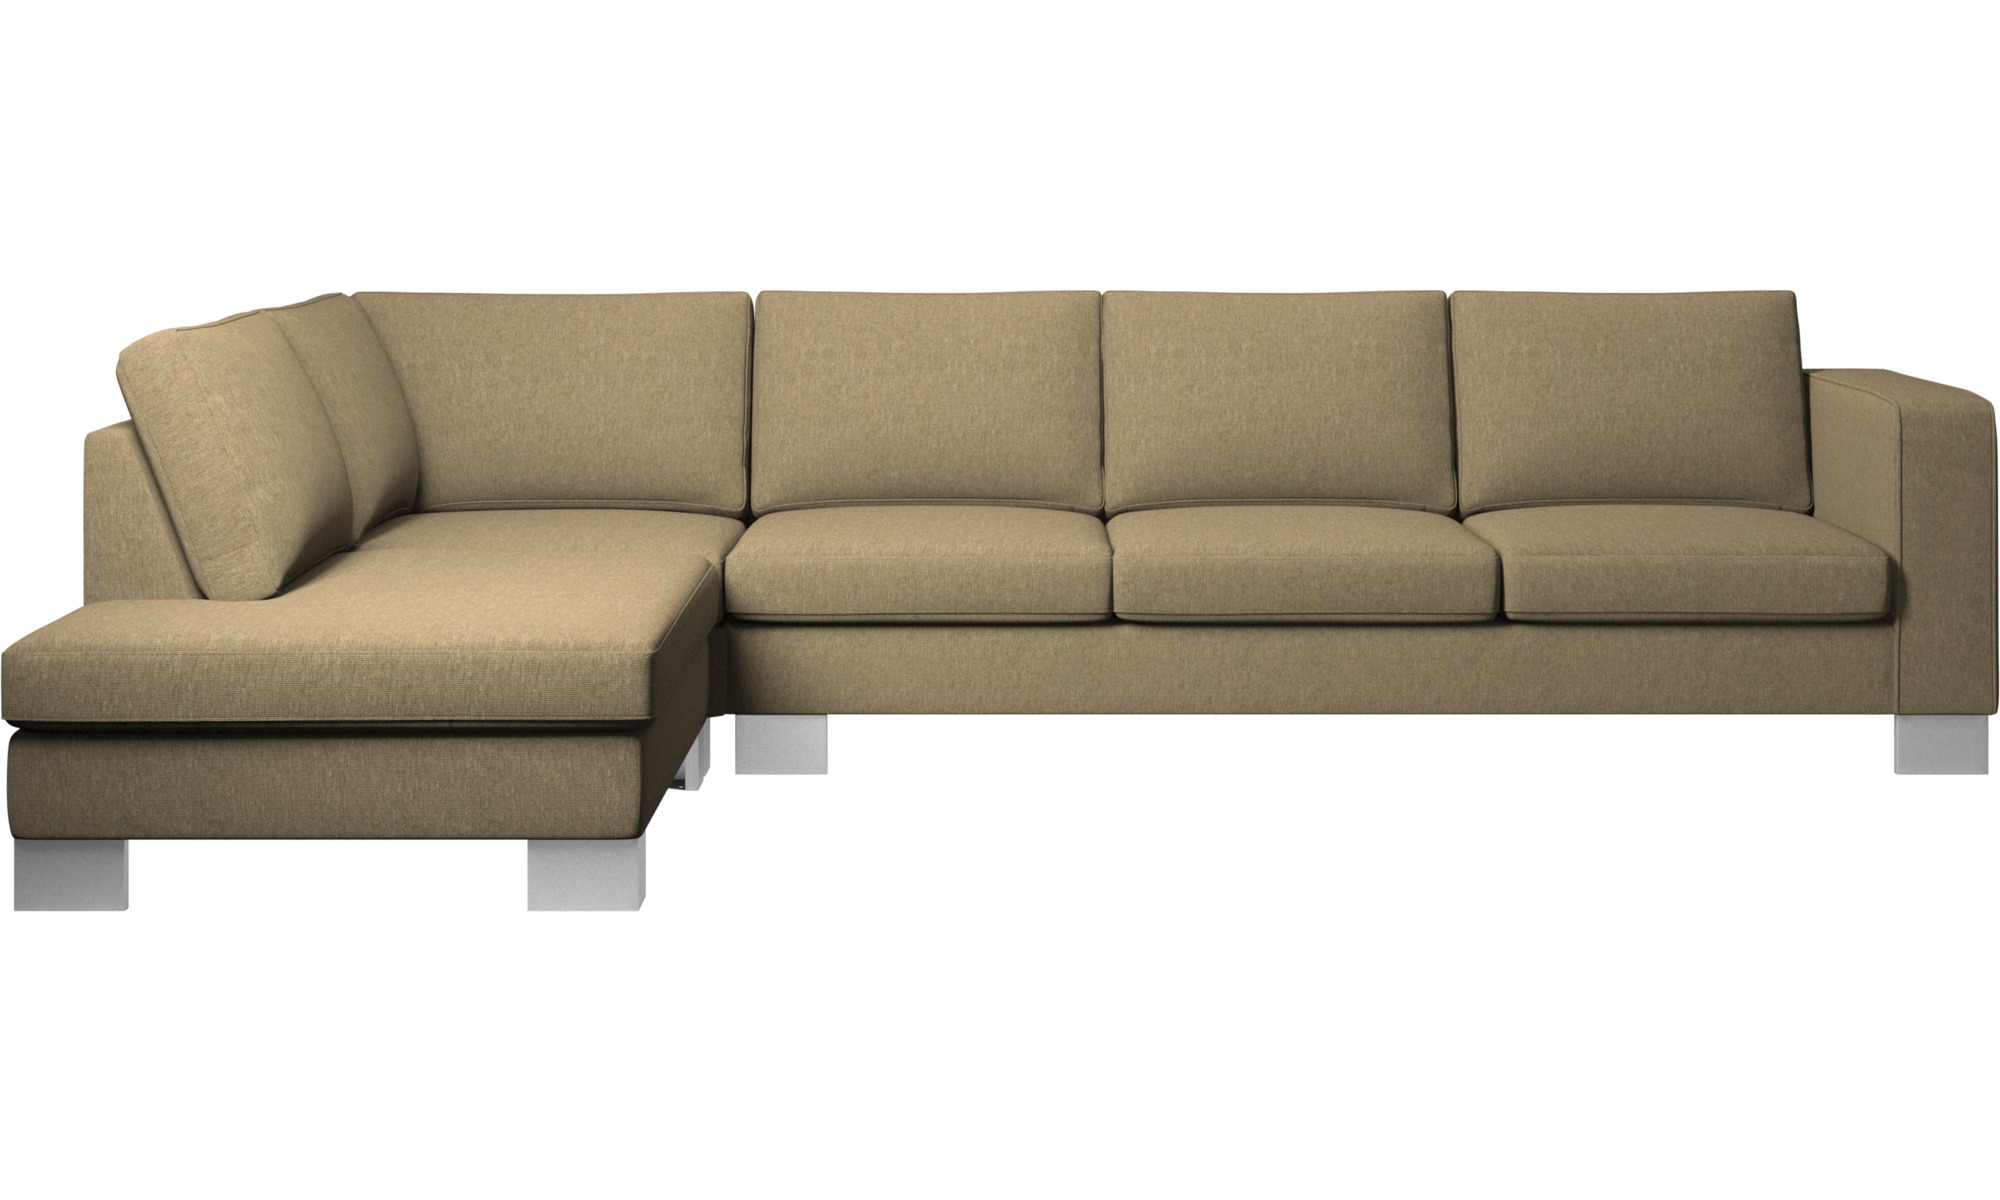 corner sofa couches sofaco cote d ivoire sofas indivi 2 with lounging unit